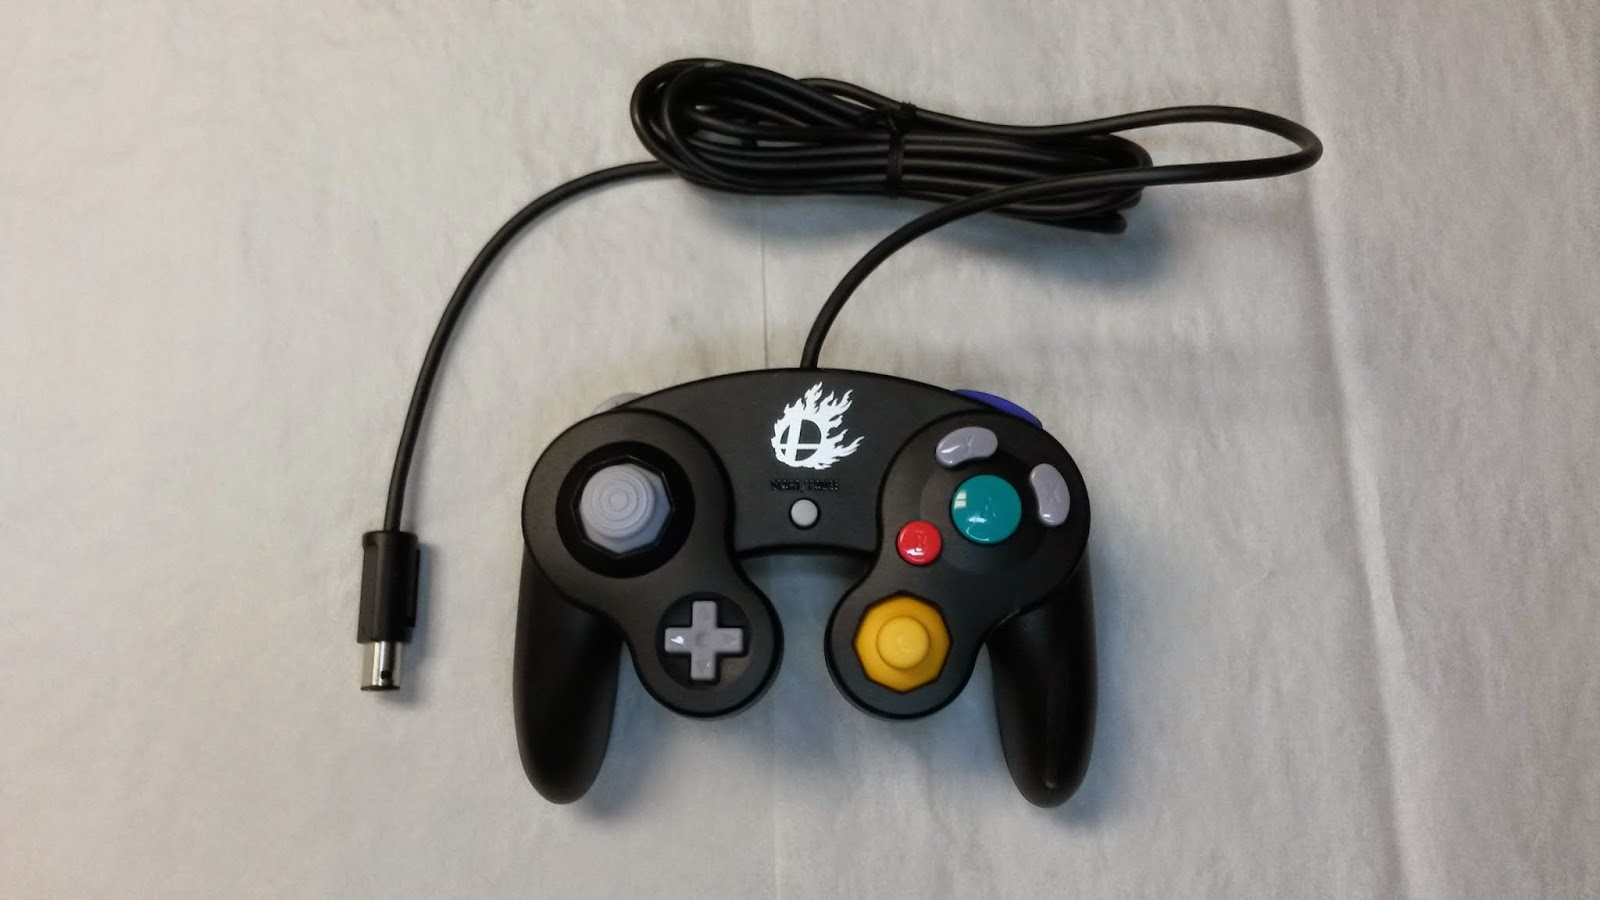 medium resolution of gamecube controller wiring diagram right stick wiring library ps1 controller wiring diagram gamecube controller wiring diagram right stick